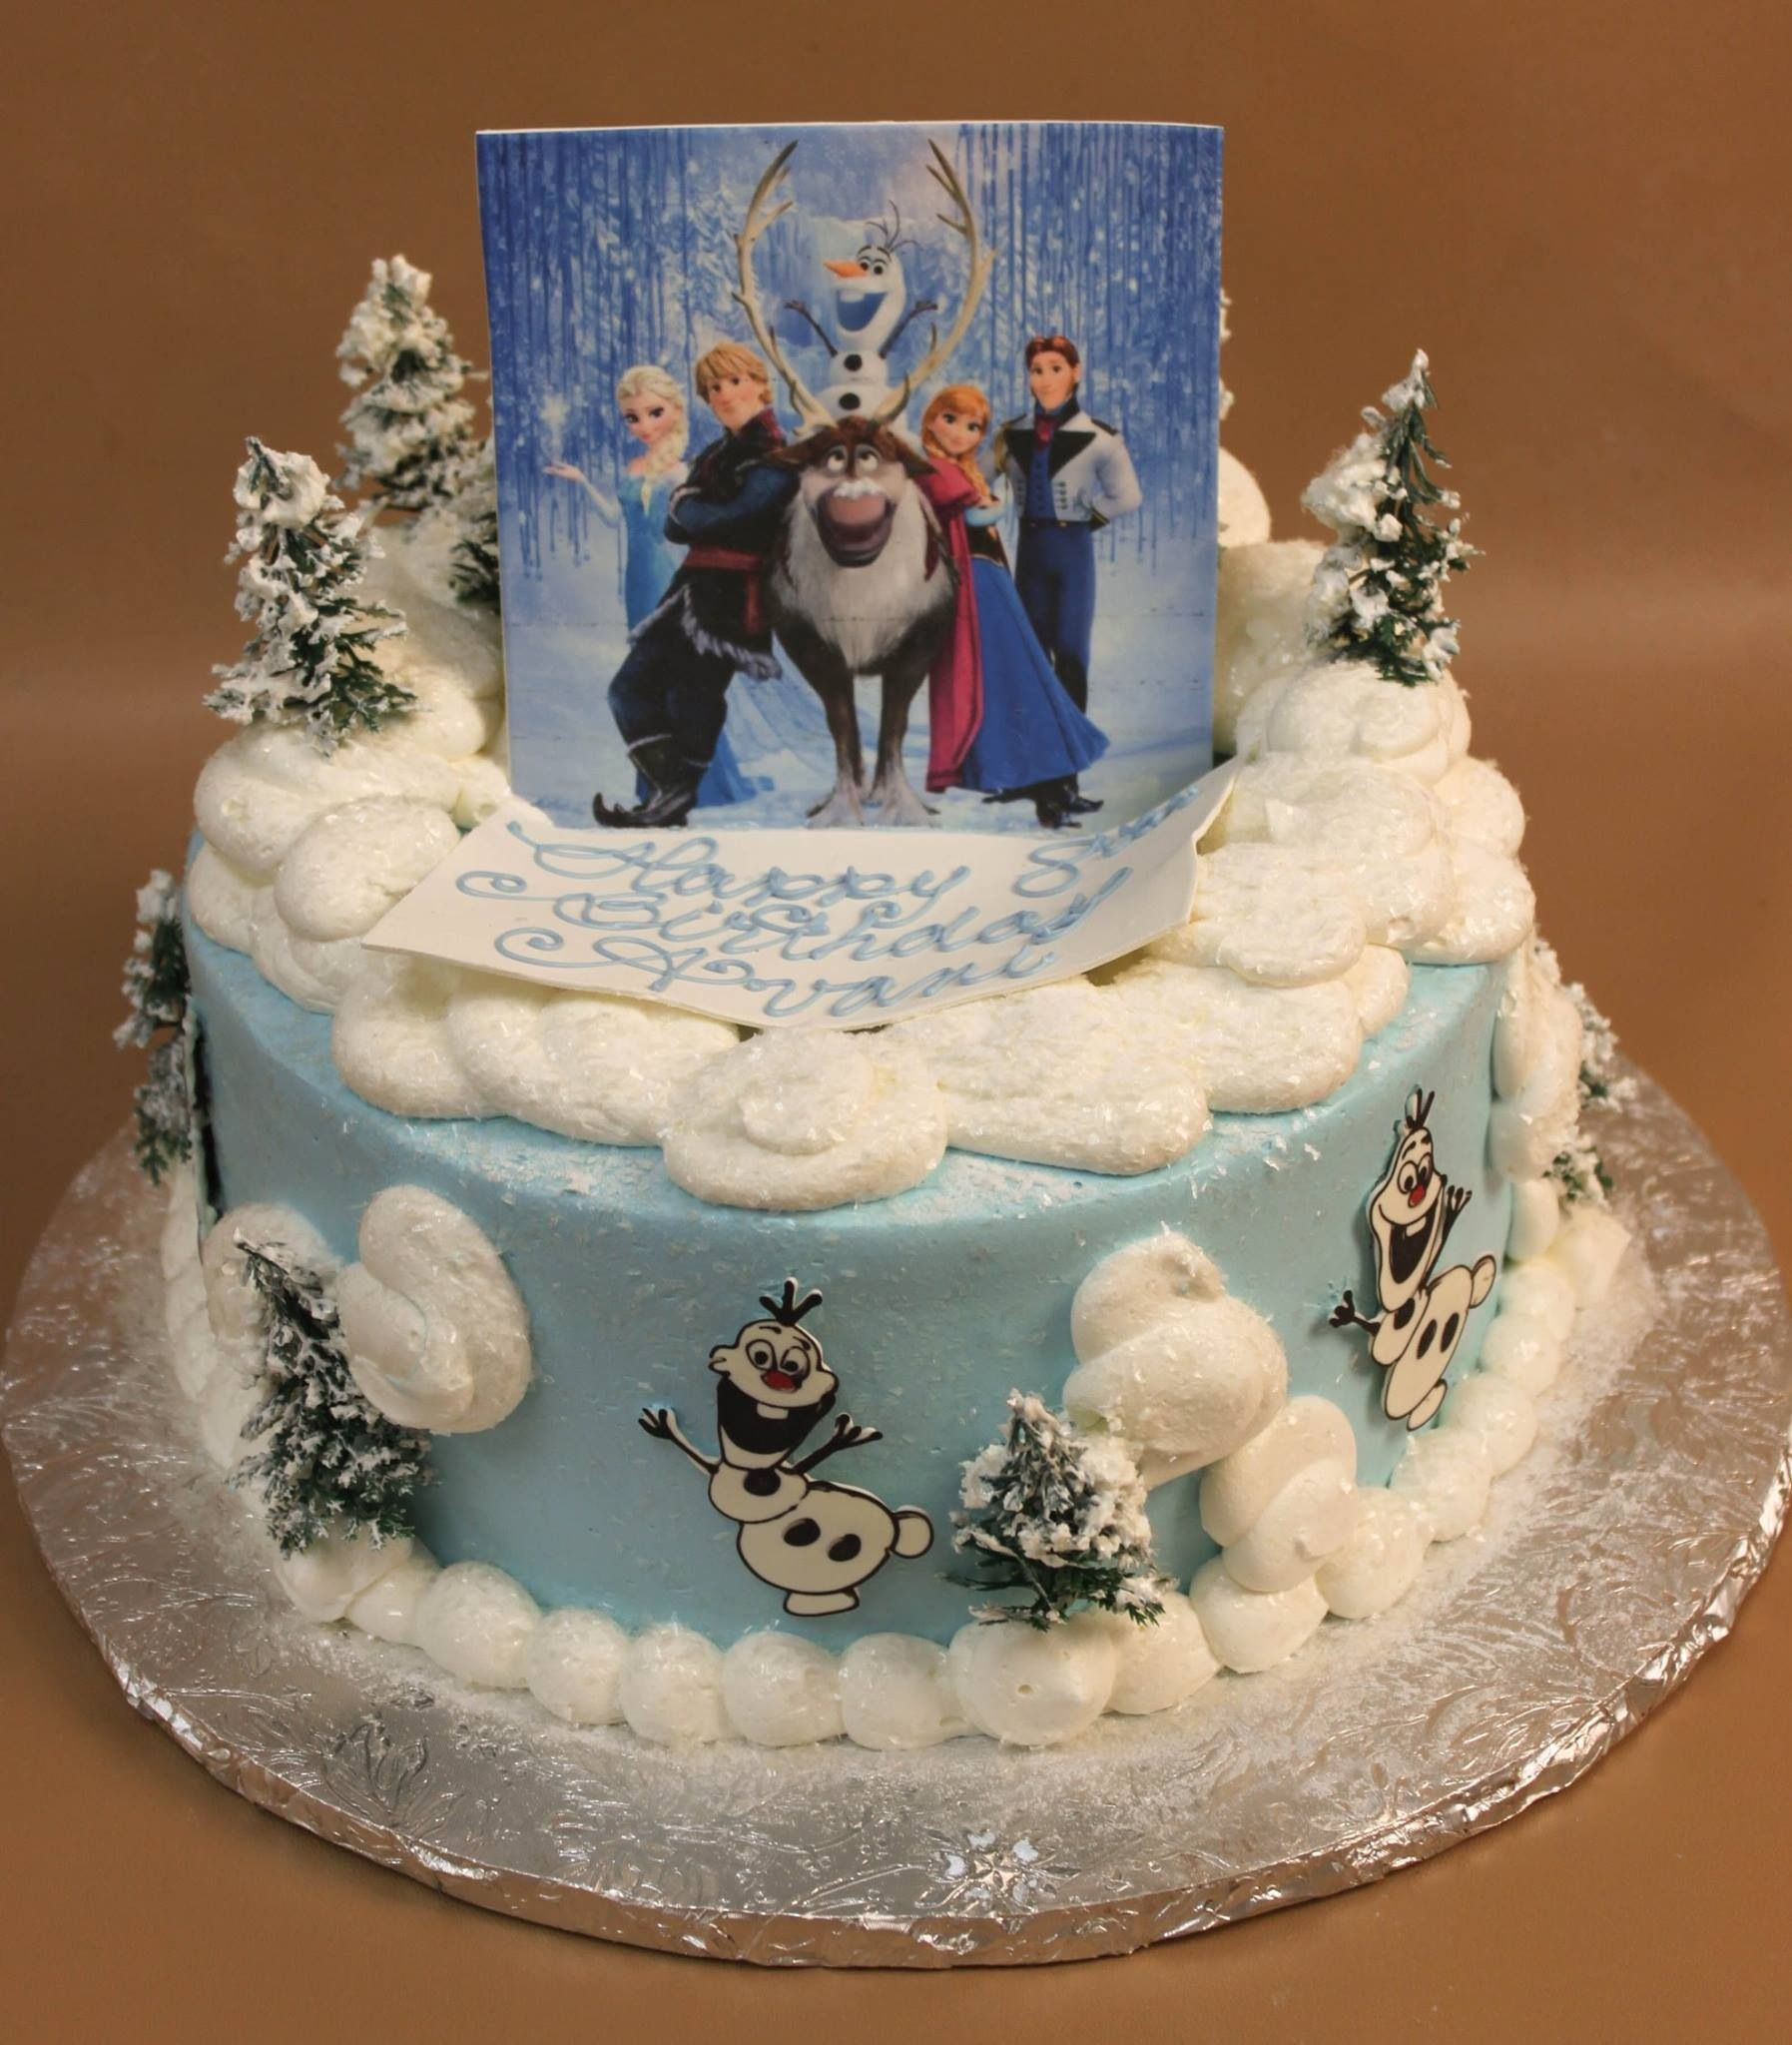 By Konditor Meister in MA a perfect Disney Frozen birthday cake